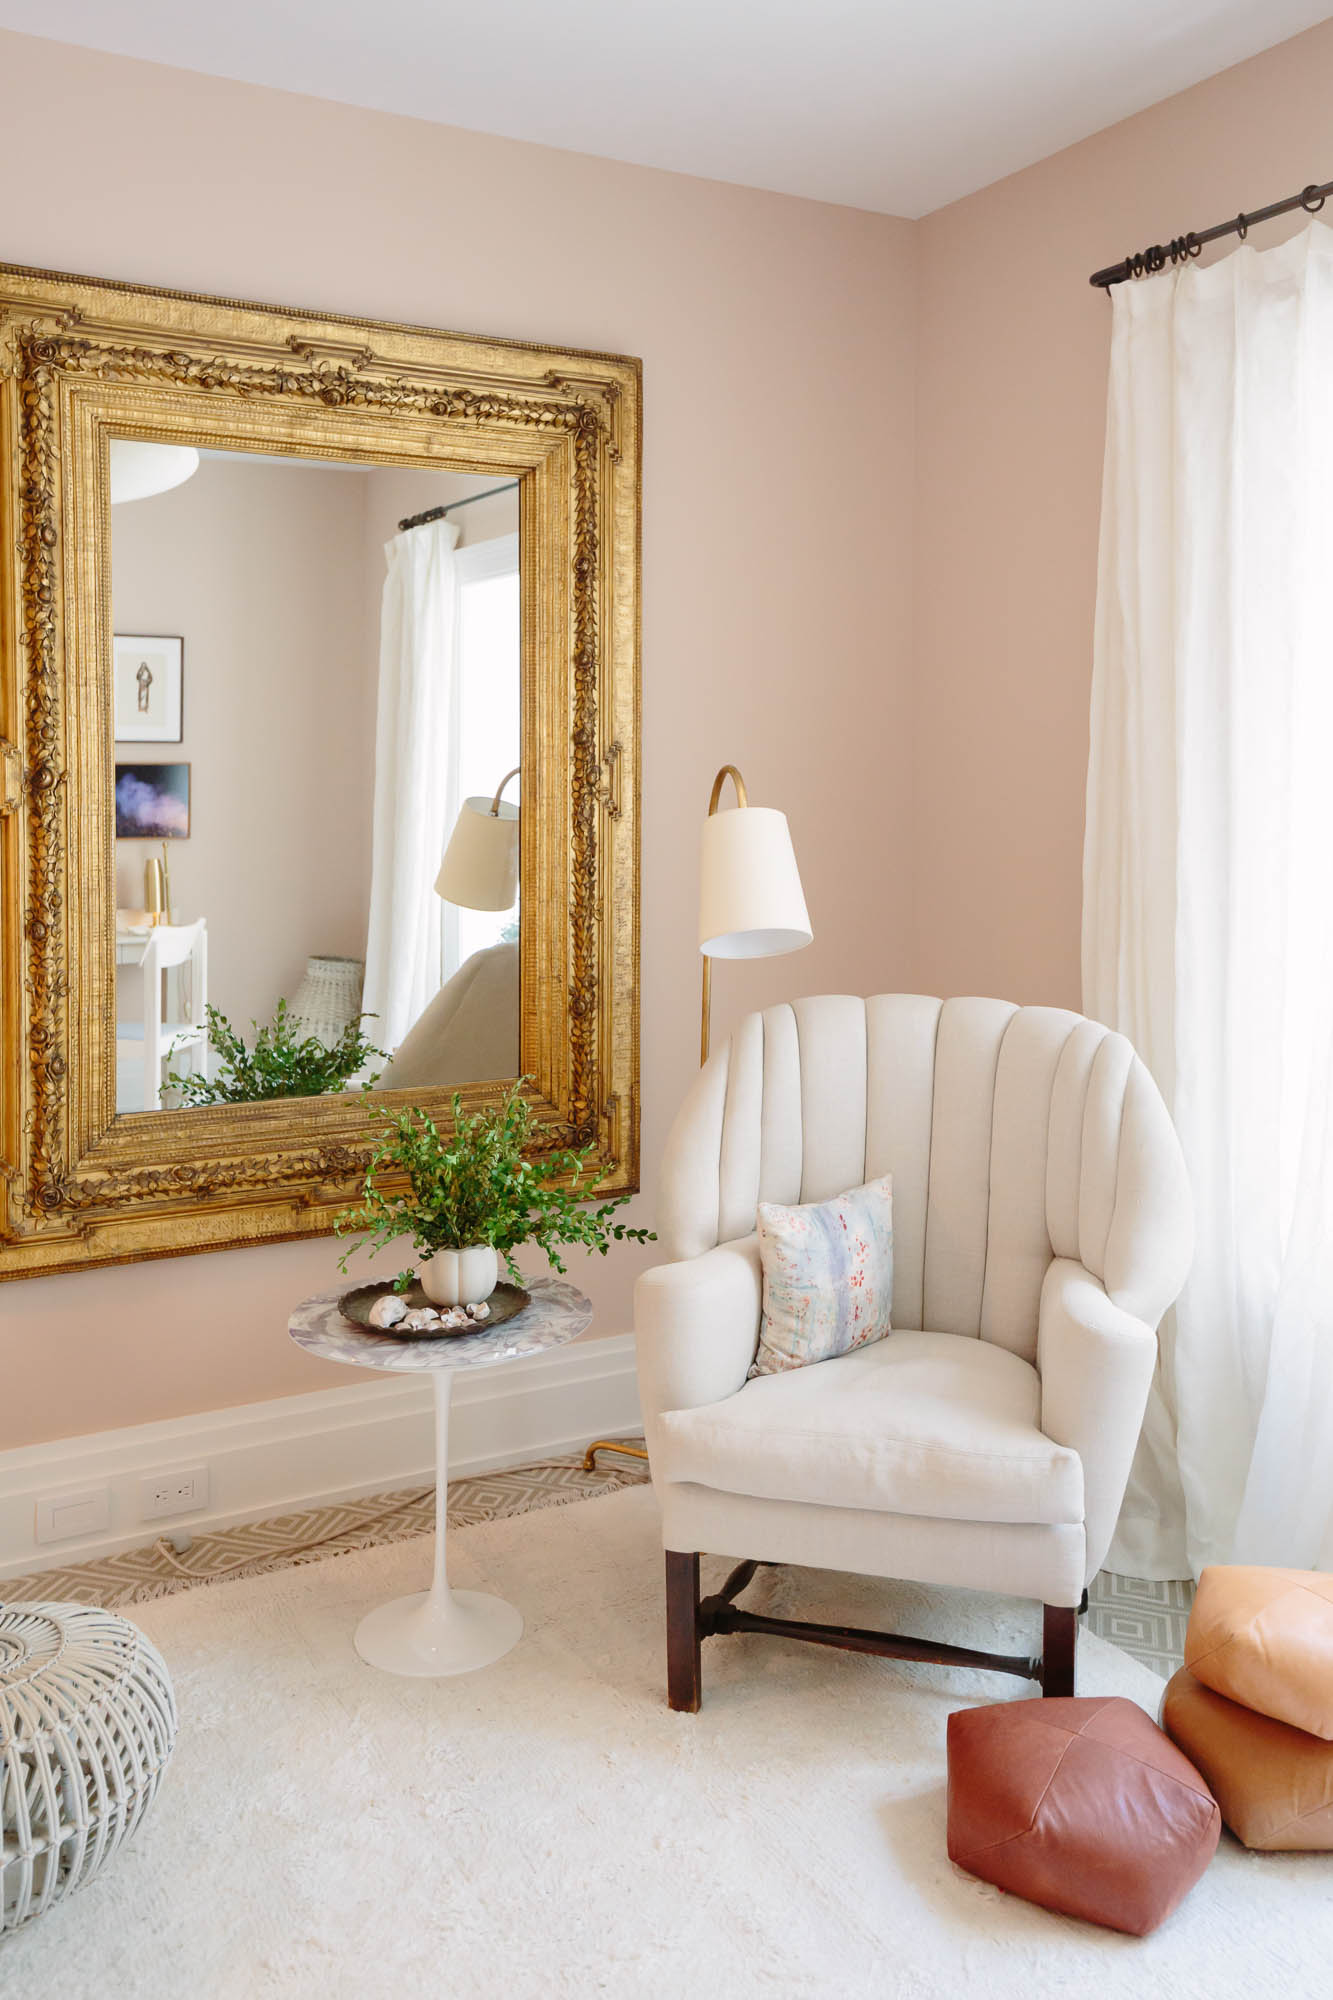 2019 Hampton Designer Showhouse featured by top US style blog, York Avenue: image of Carter Design room at the 2019 Hampton Designer Showhouse